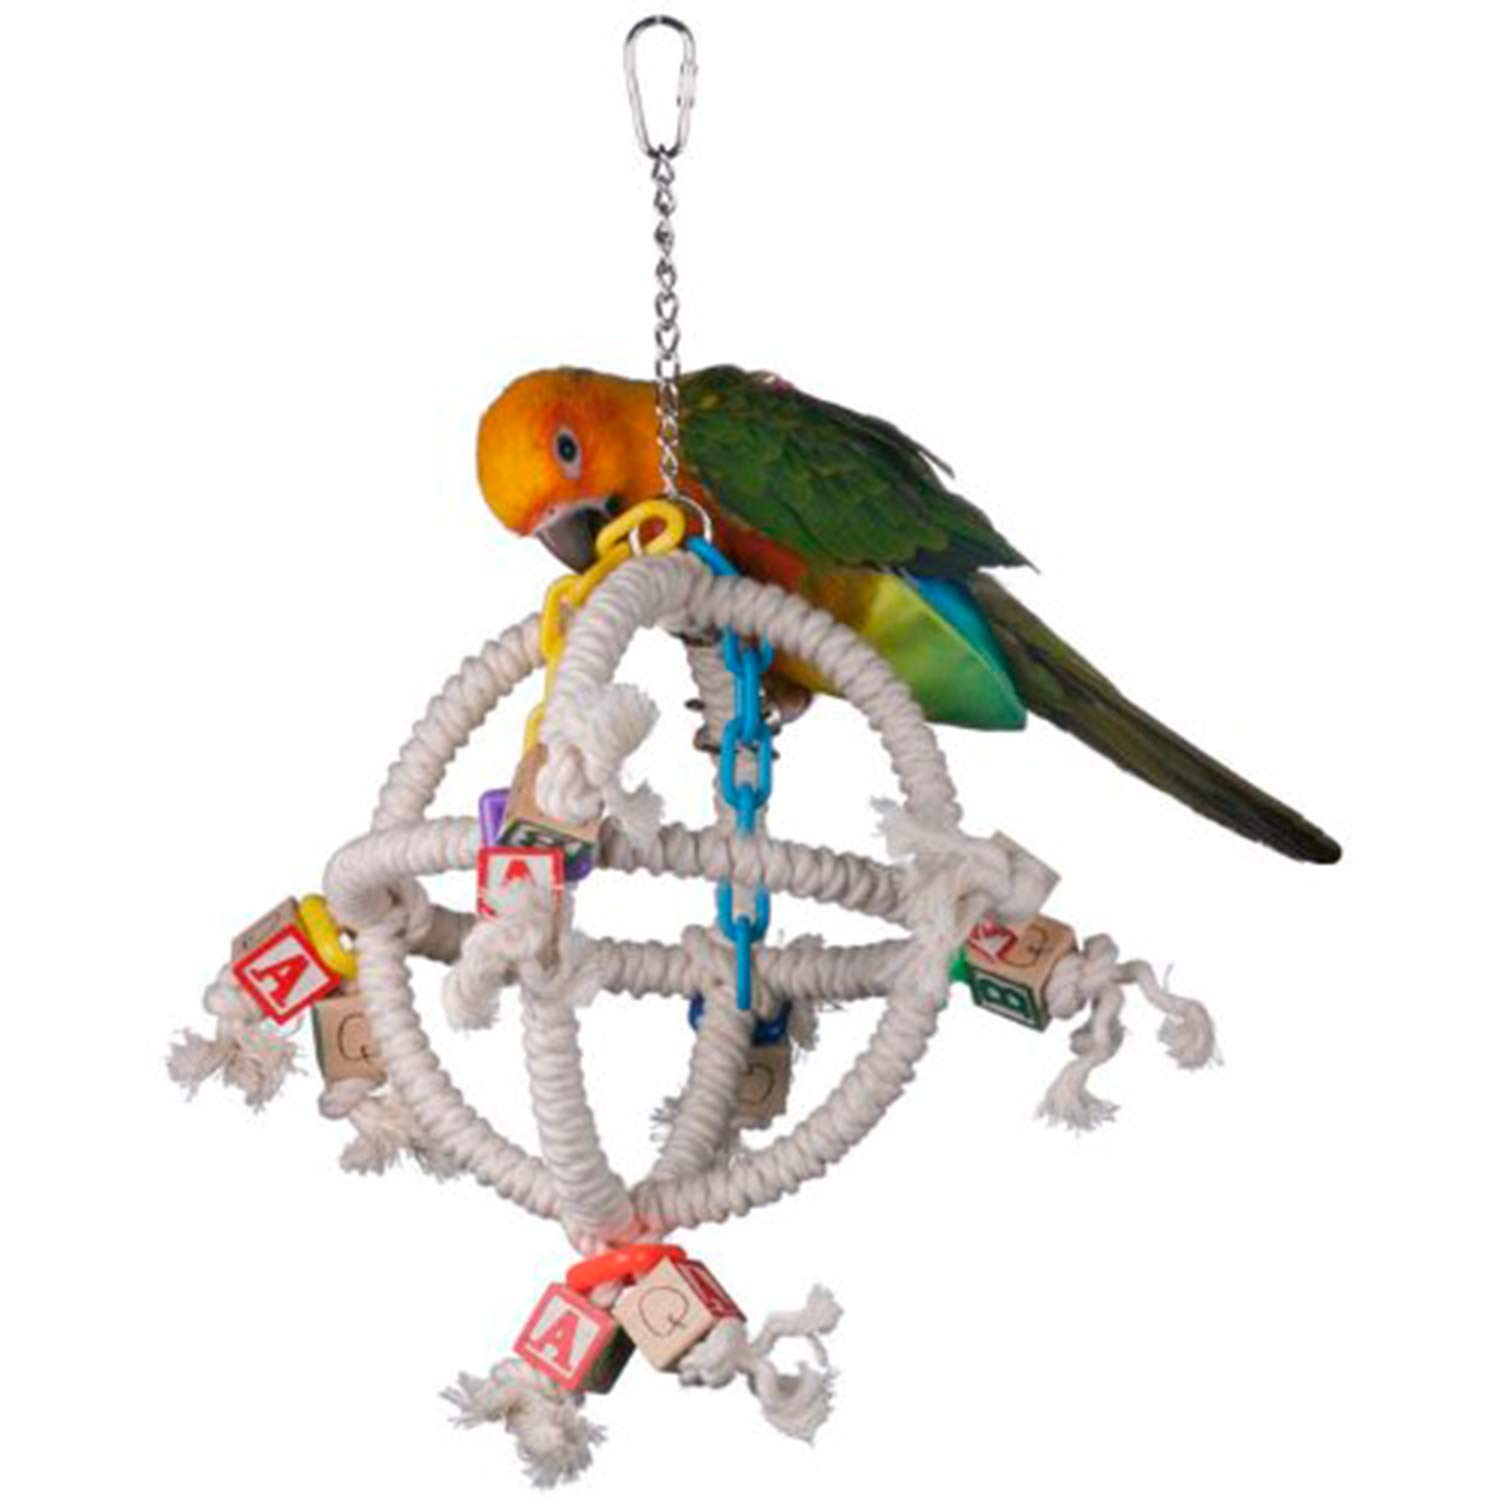 Super Bird Creations SB445 Fun Round Swinging Orbiter Bird Toy, Small to Medium Size, 14'' x 10'' x 10'' by SUPERBIRD